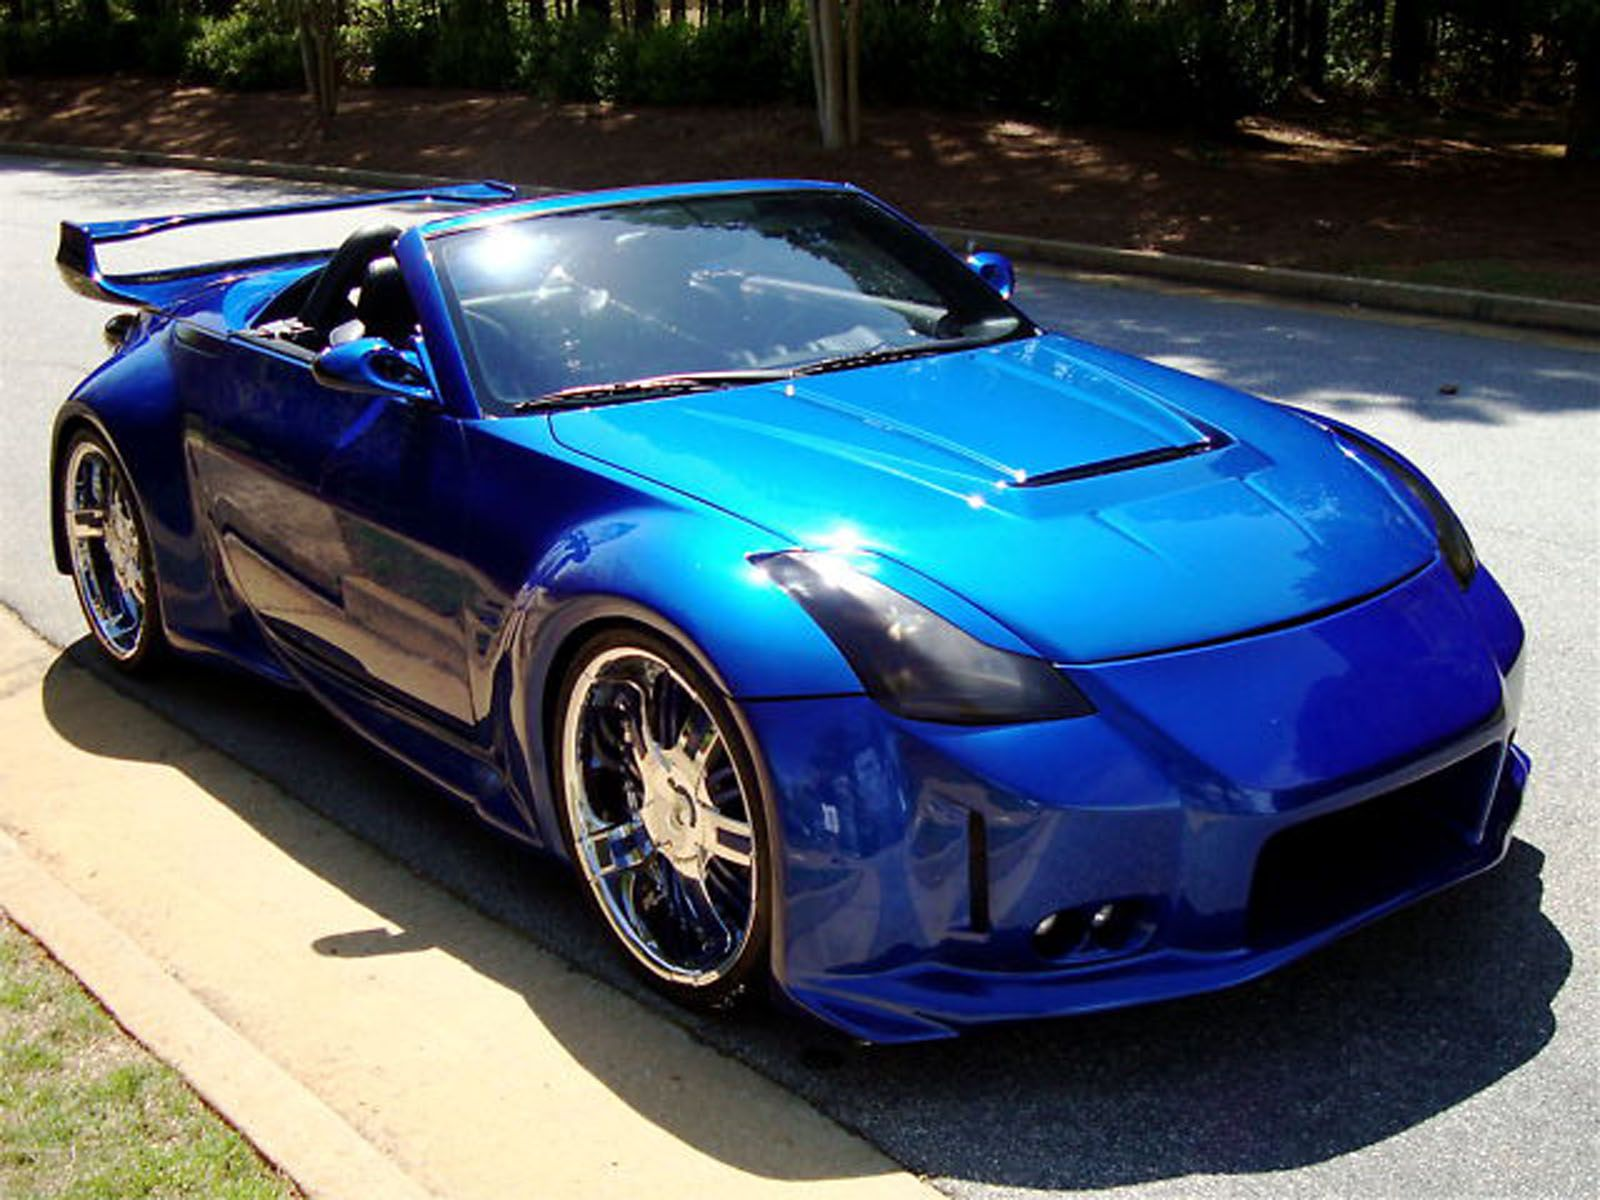 nissan 370z tuning cars pinterest nissan 370z. Black Bedroom Furniture Sets. Home Design Ideas